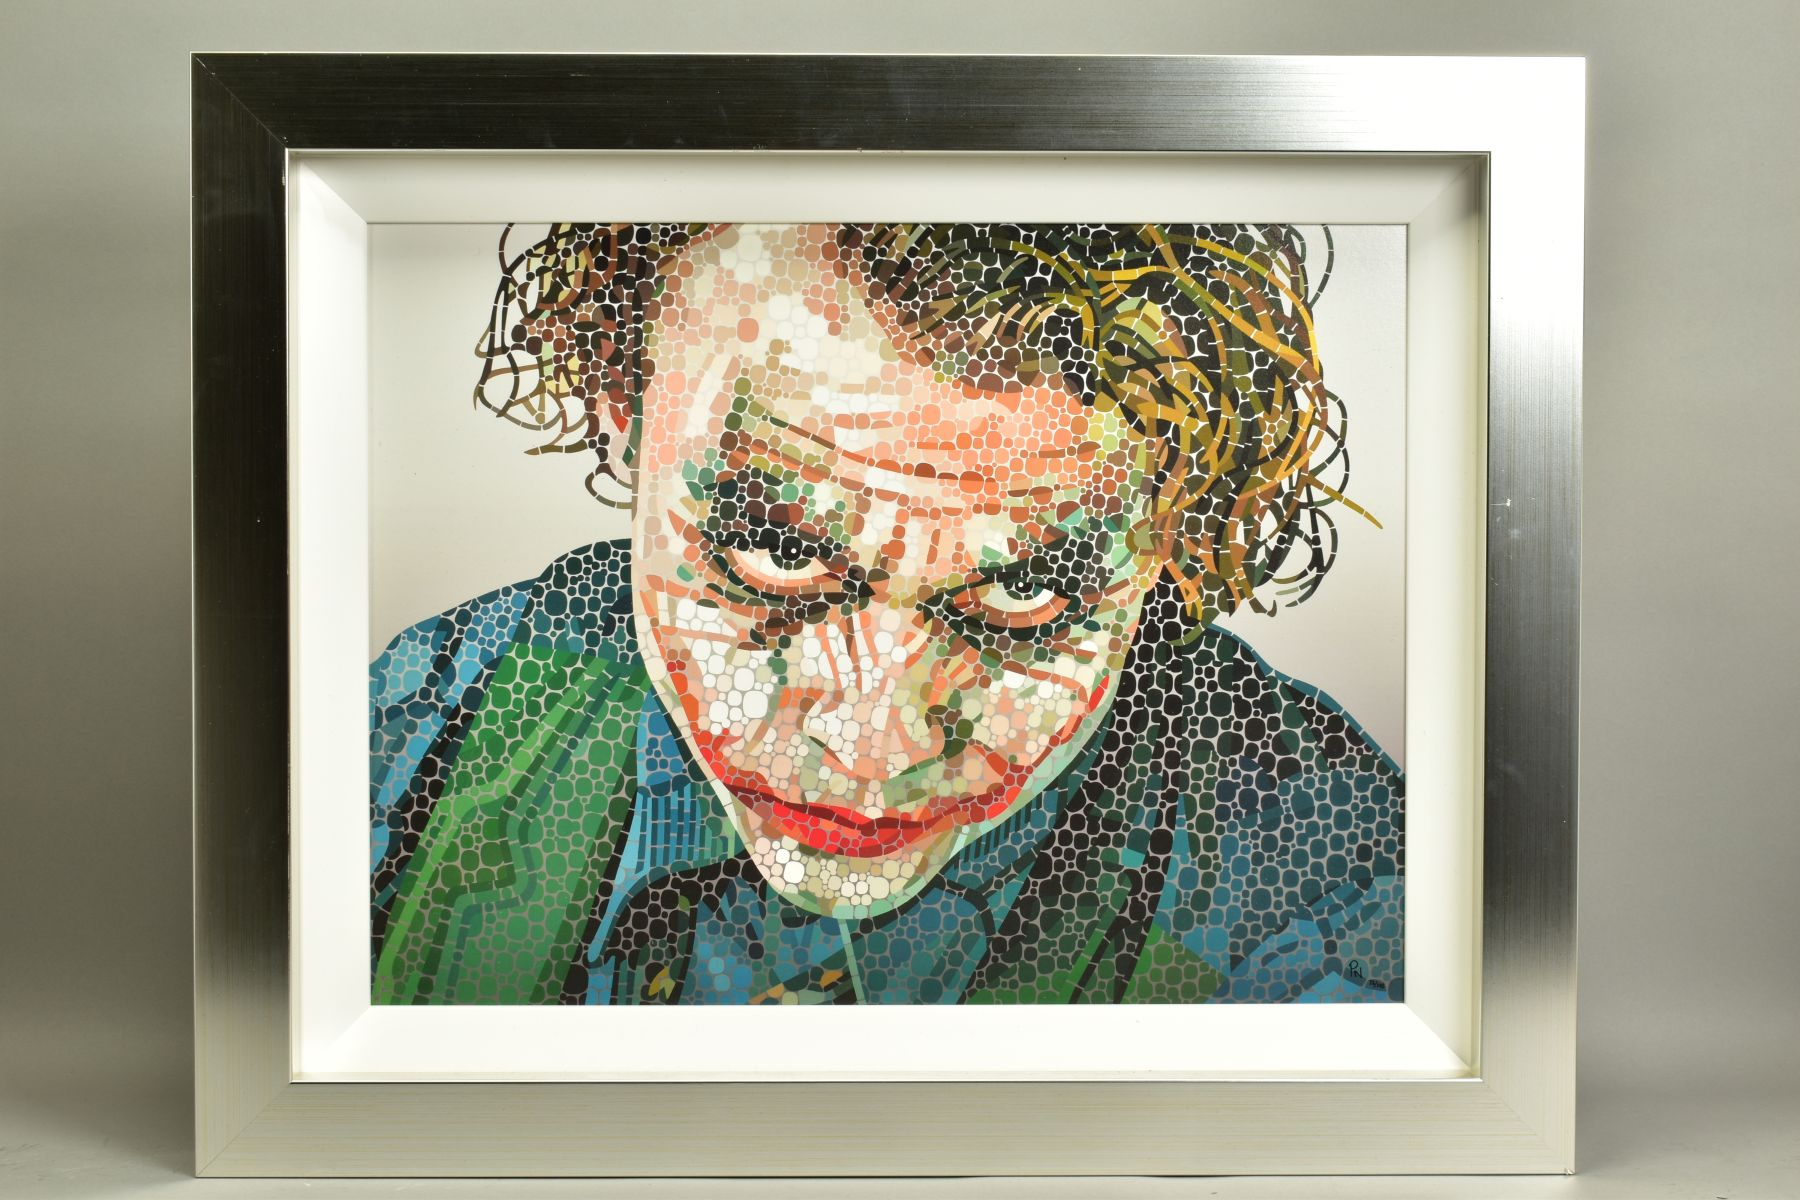 PAUL NORMANSELL (BRITISH 1978), 'Call Me Crazy', a Limited Edition print of Batman nemesis The